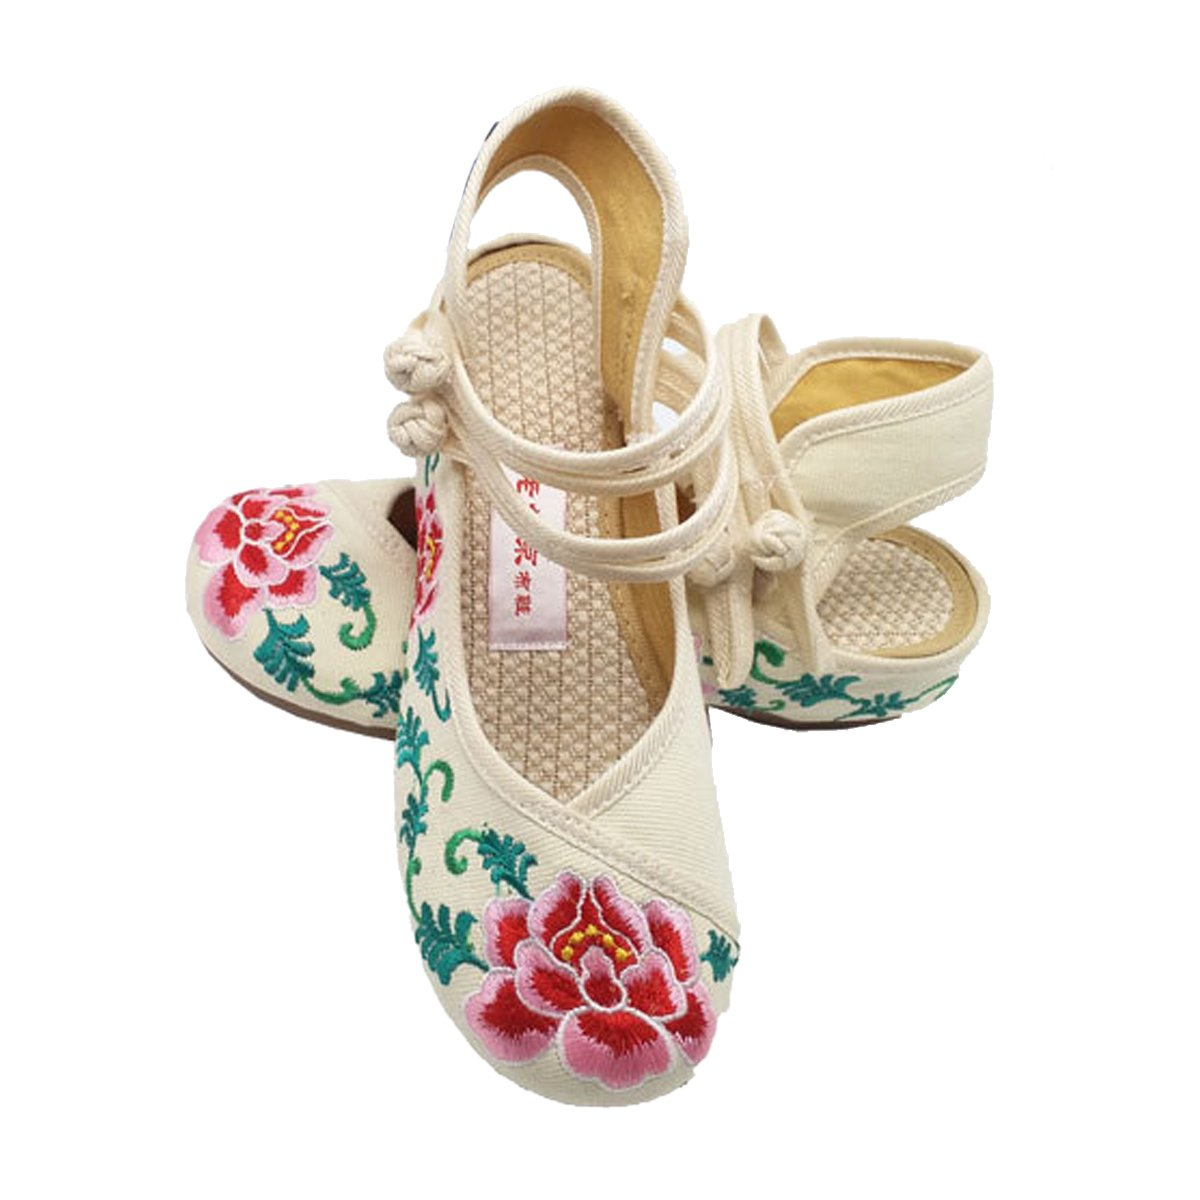 Univegrow Women\'s Embroidered Flat Cotton Shoes